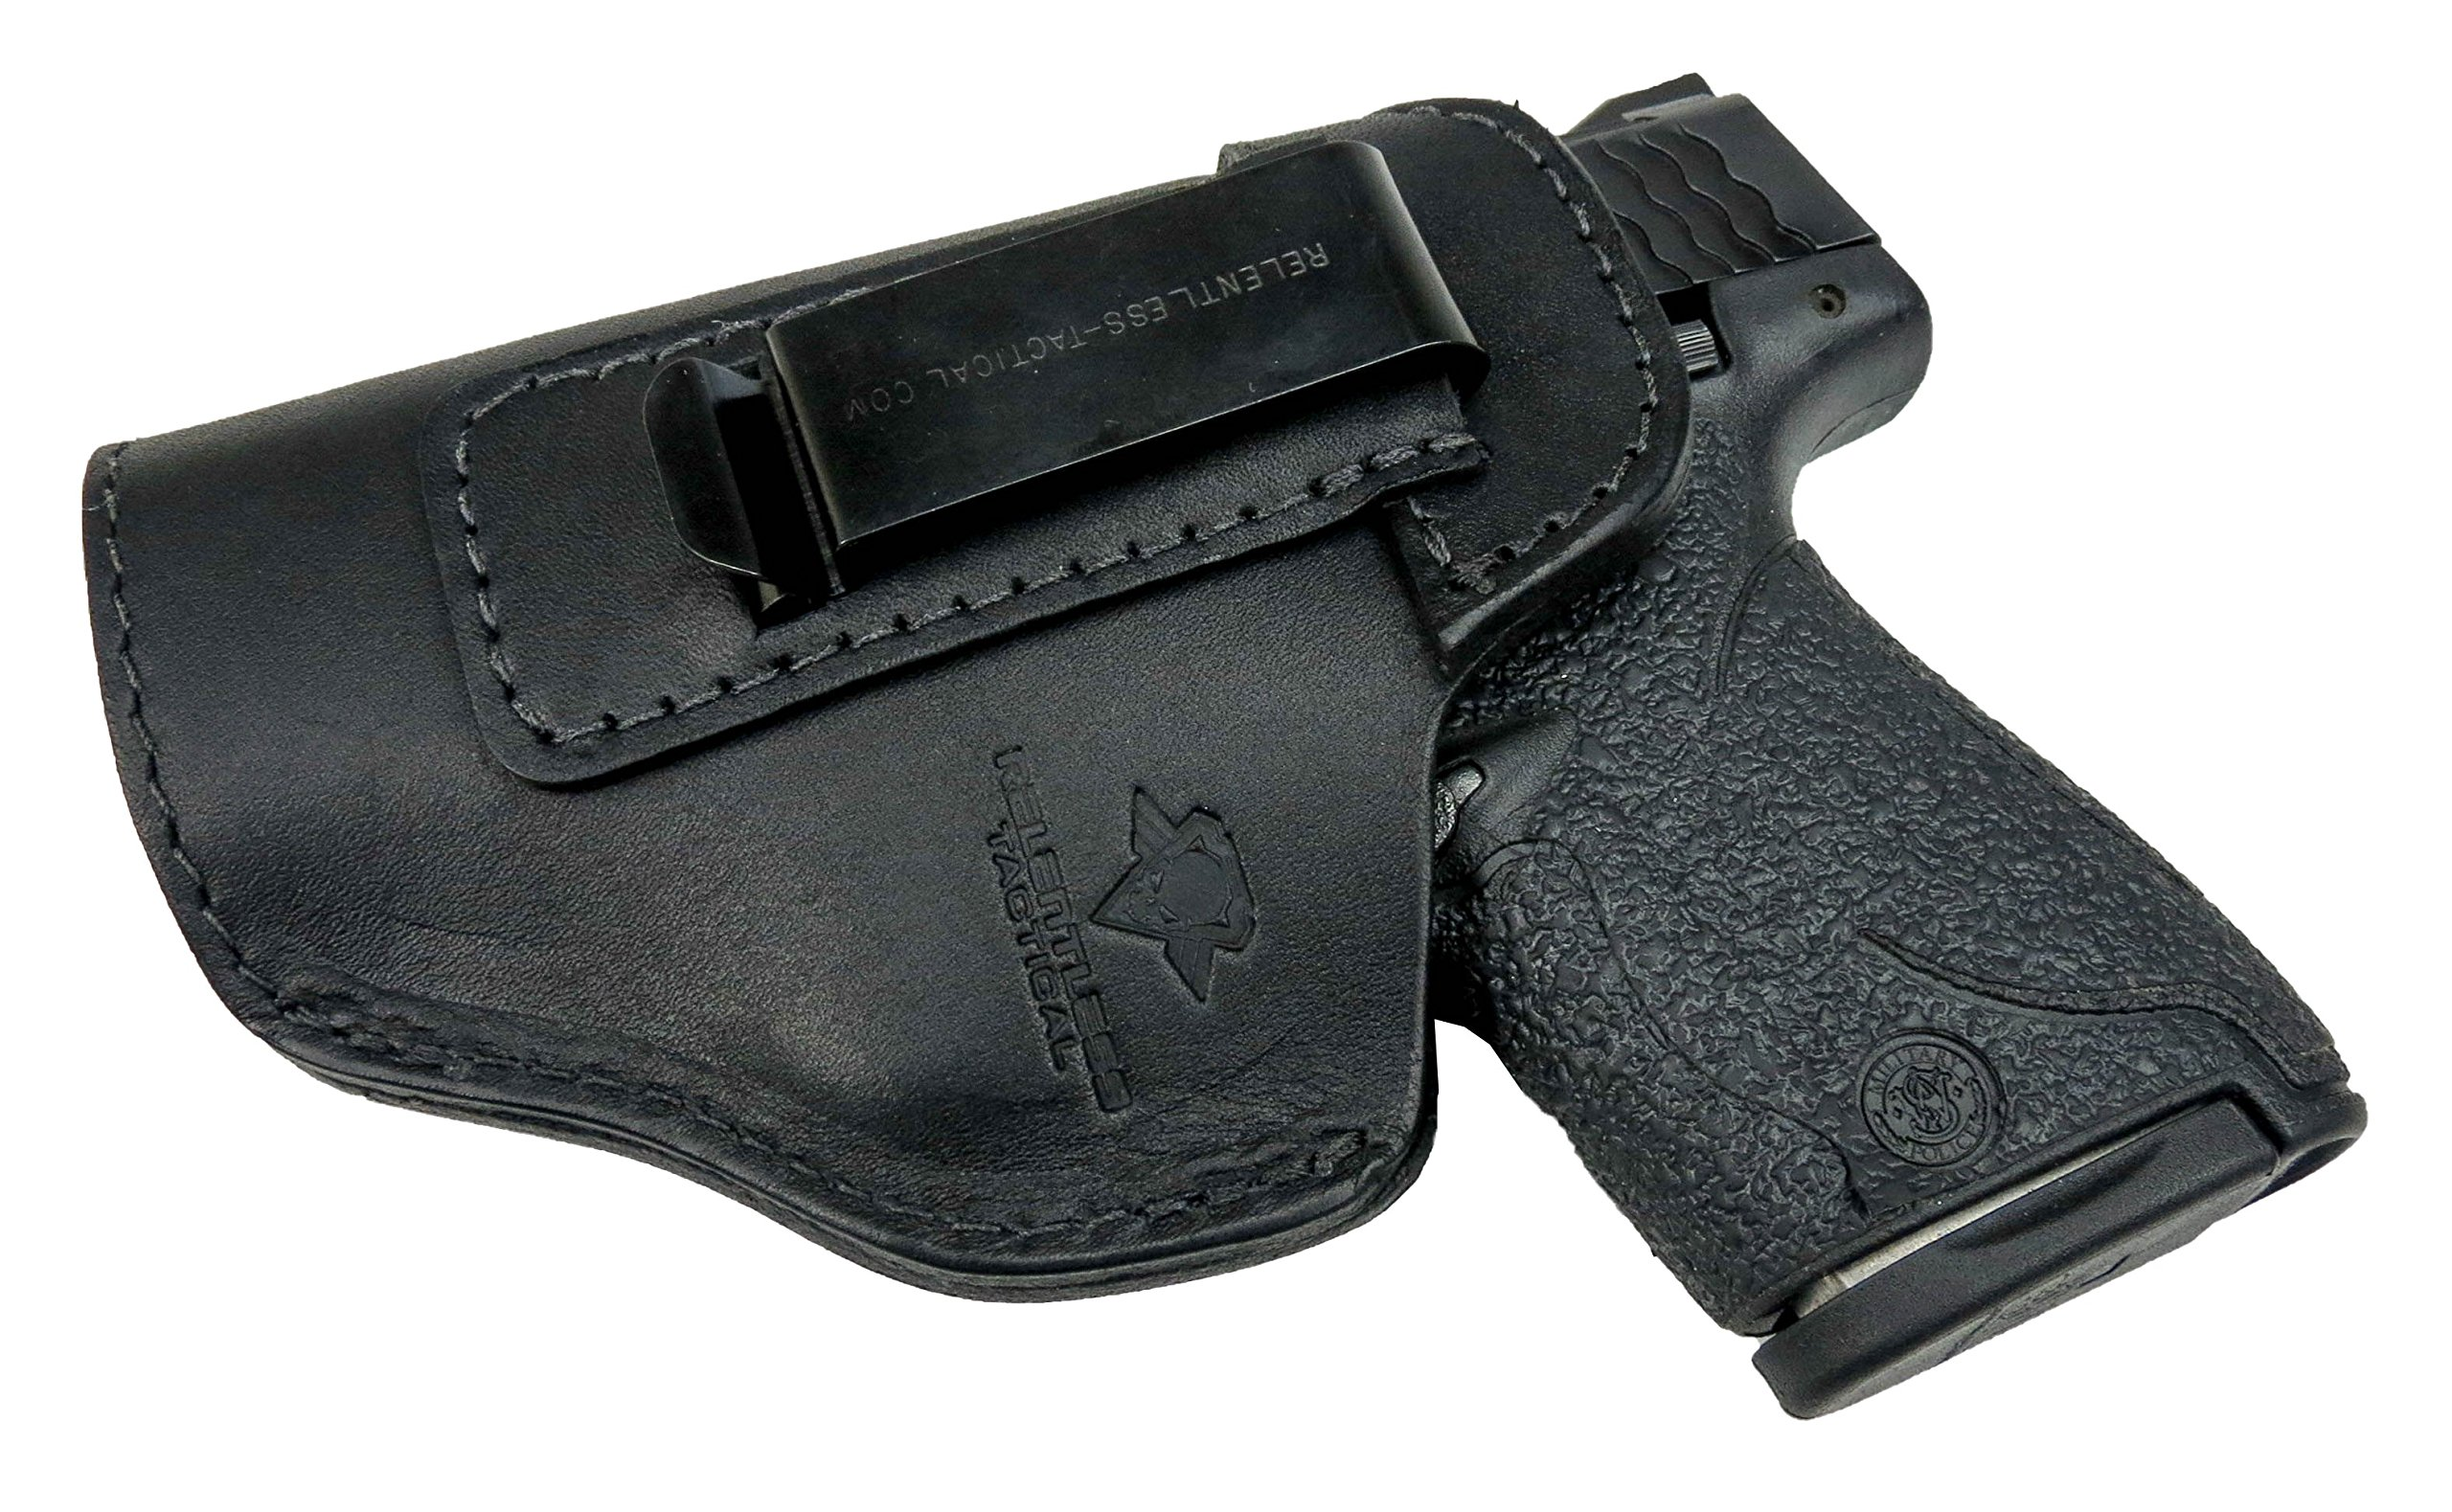 Relentless Tactical The Defender Leather IWB Holster - Made in USA - for S&W M&P Shield - Glock 17 19 22 23 32 33/Springfield XD & XDS/Plus All Similar Sized Handguns - Black - Left Handed by Relentless Tactical